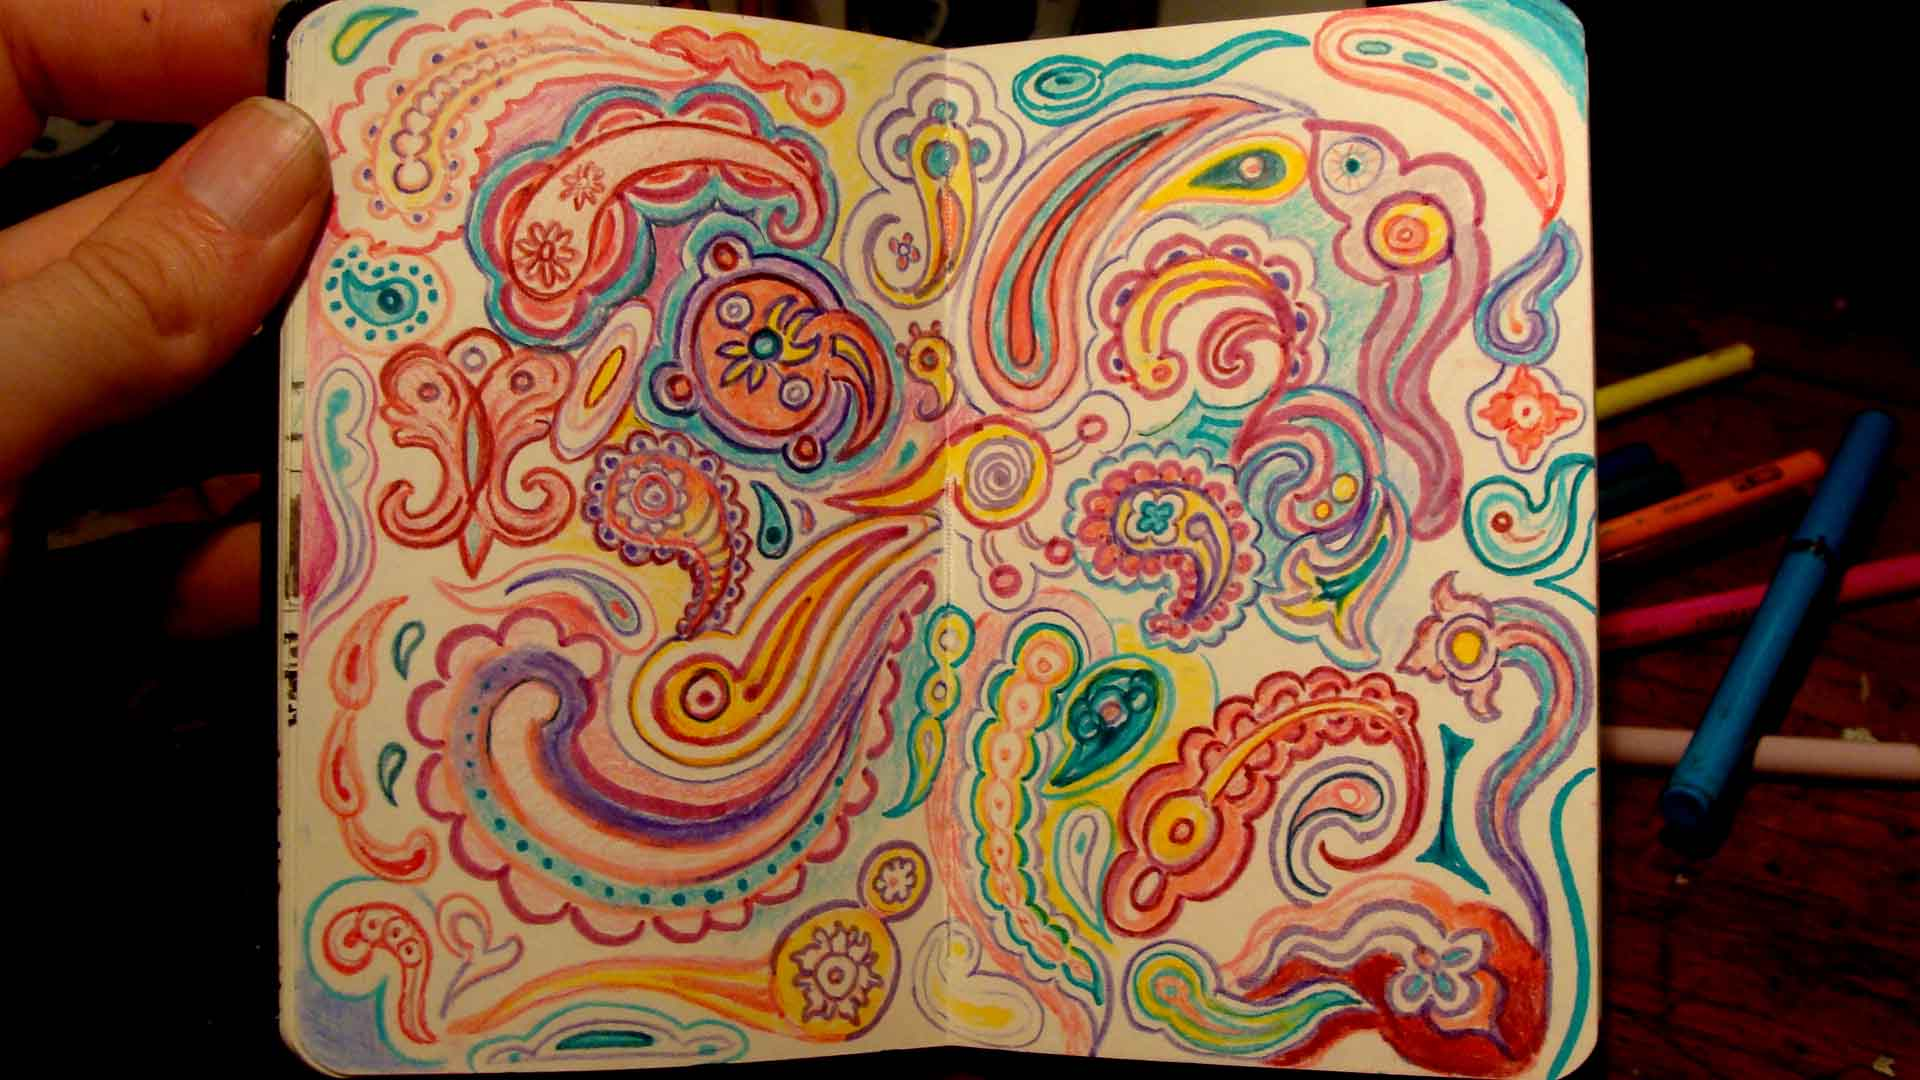 Paisley (Wayne Ferrebee, 2015, color pencil and ink)